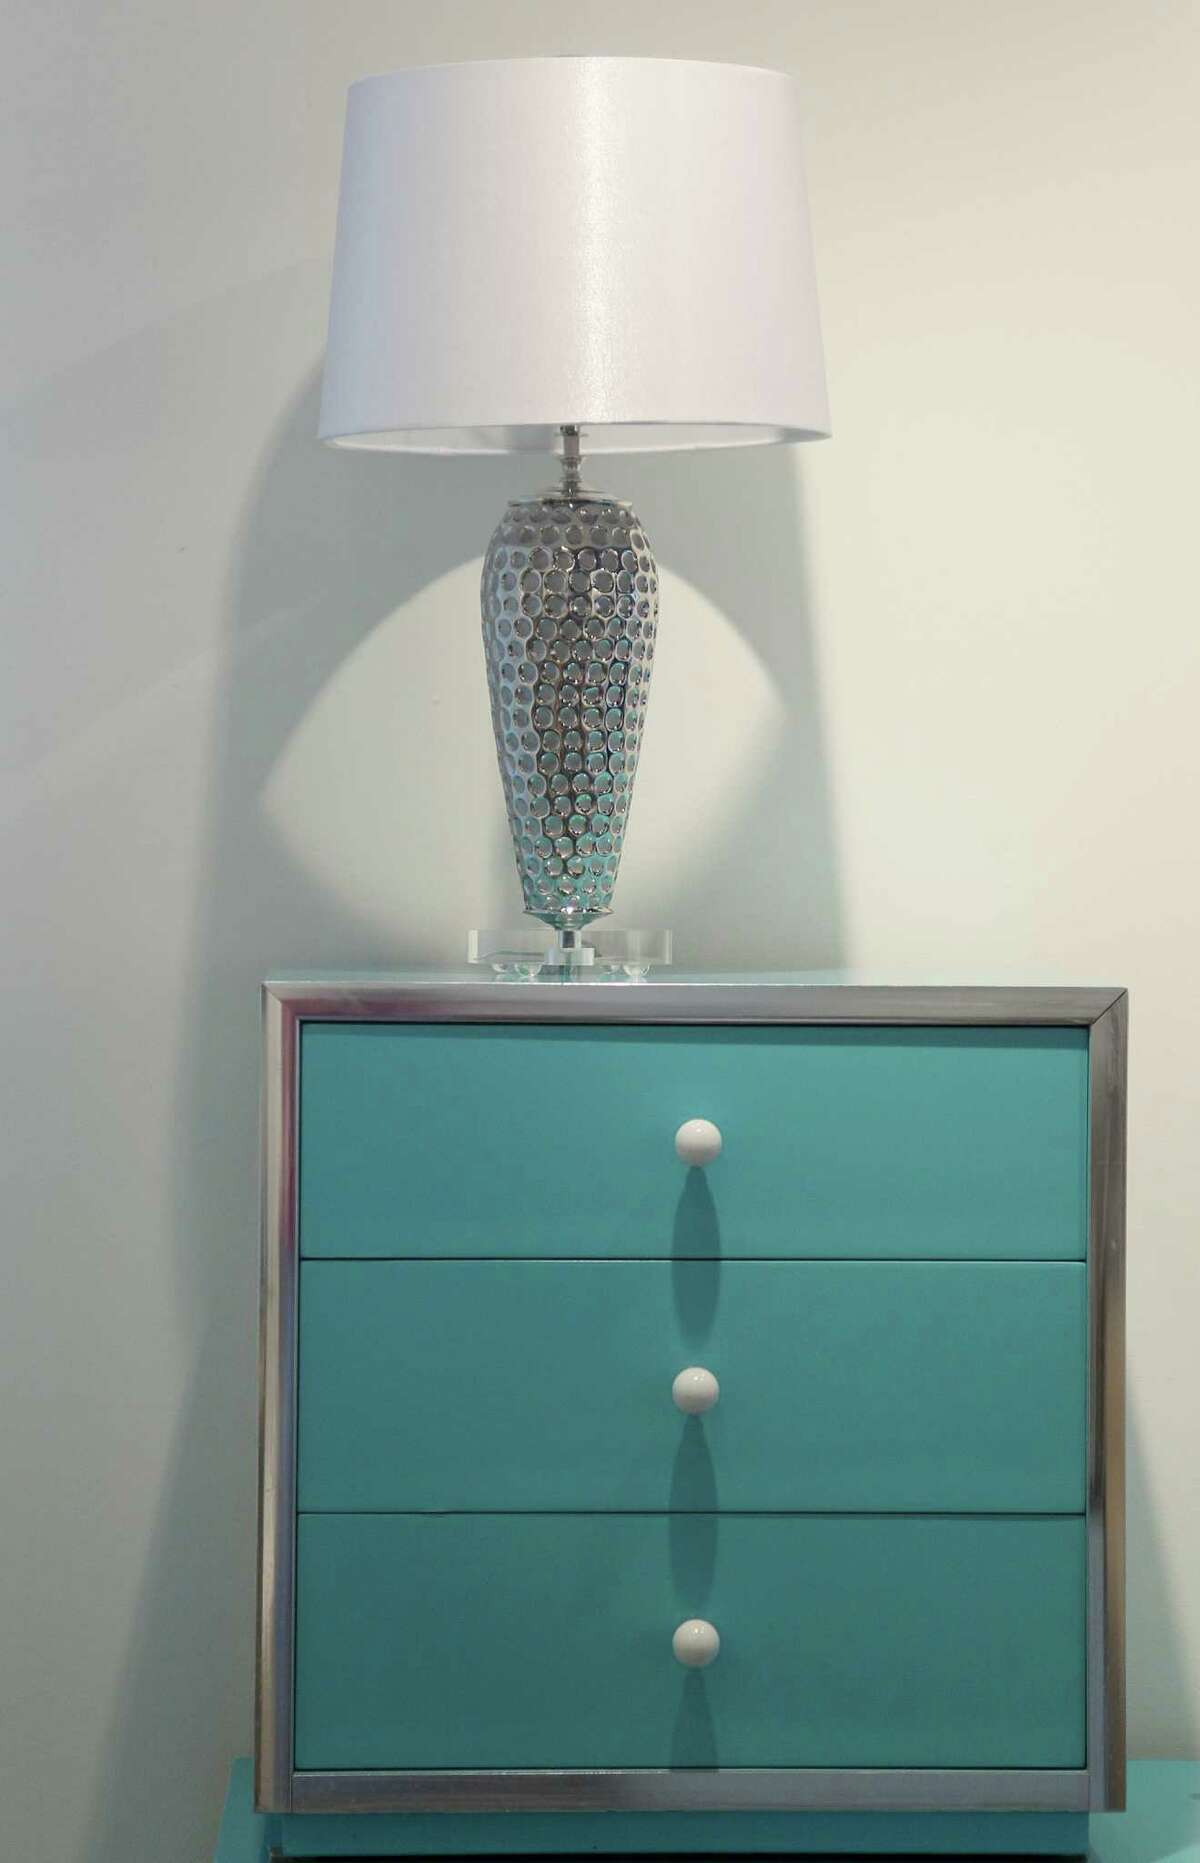 A Tiffany blue dresser.